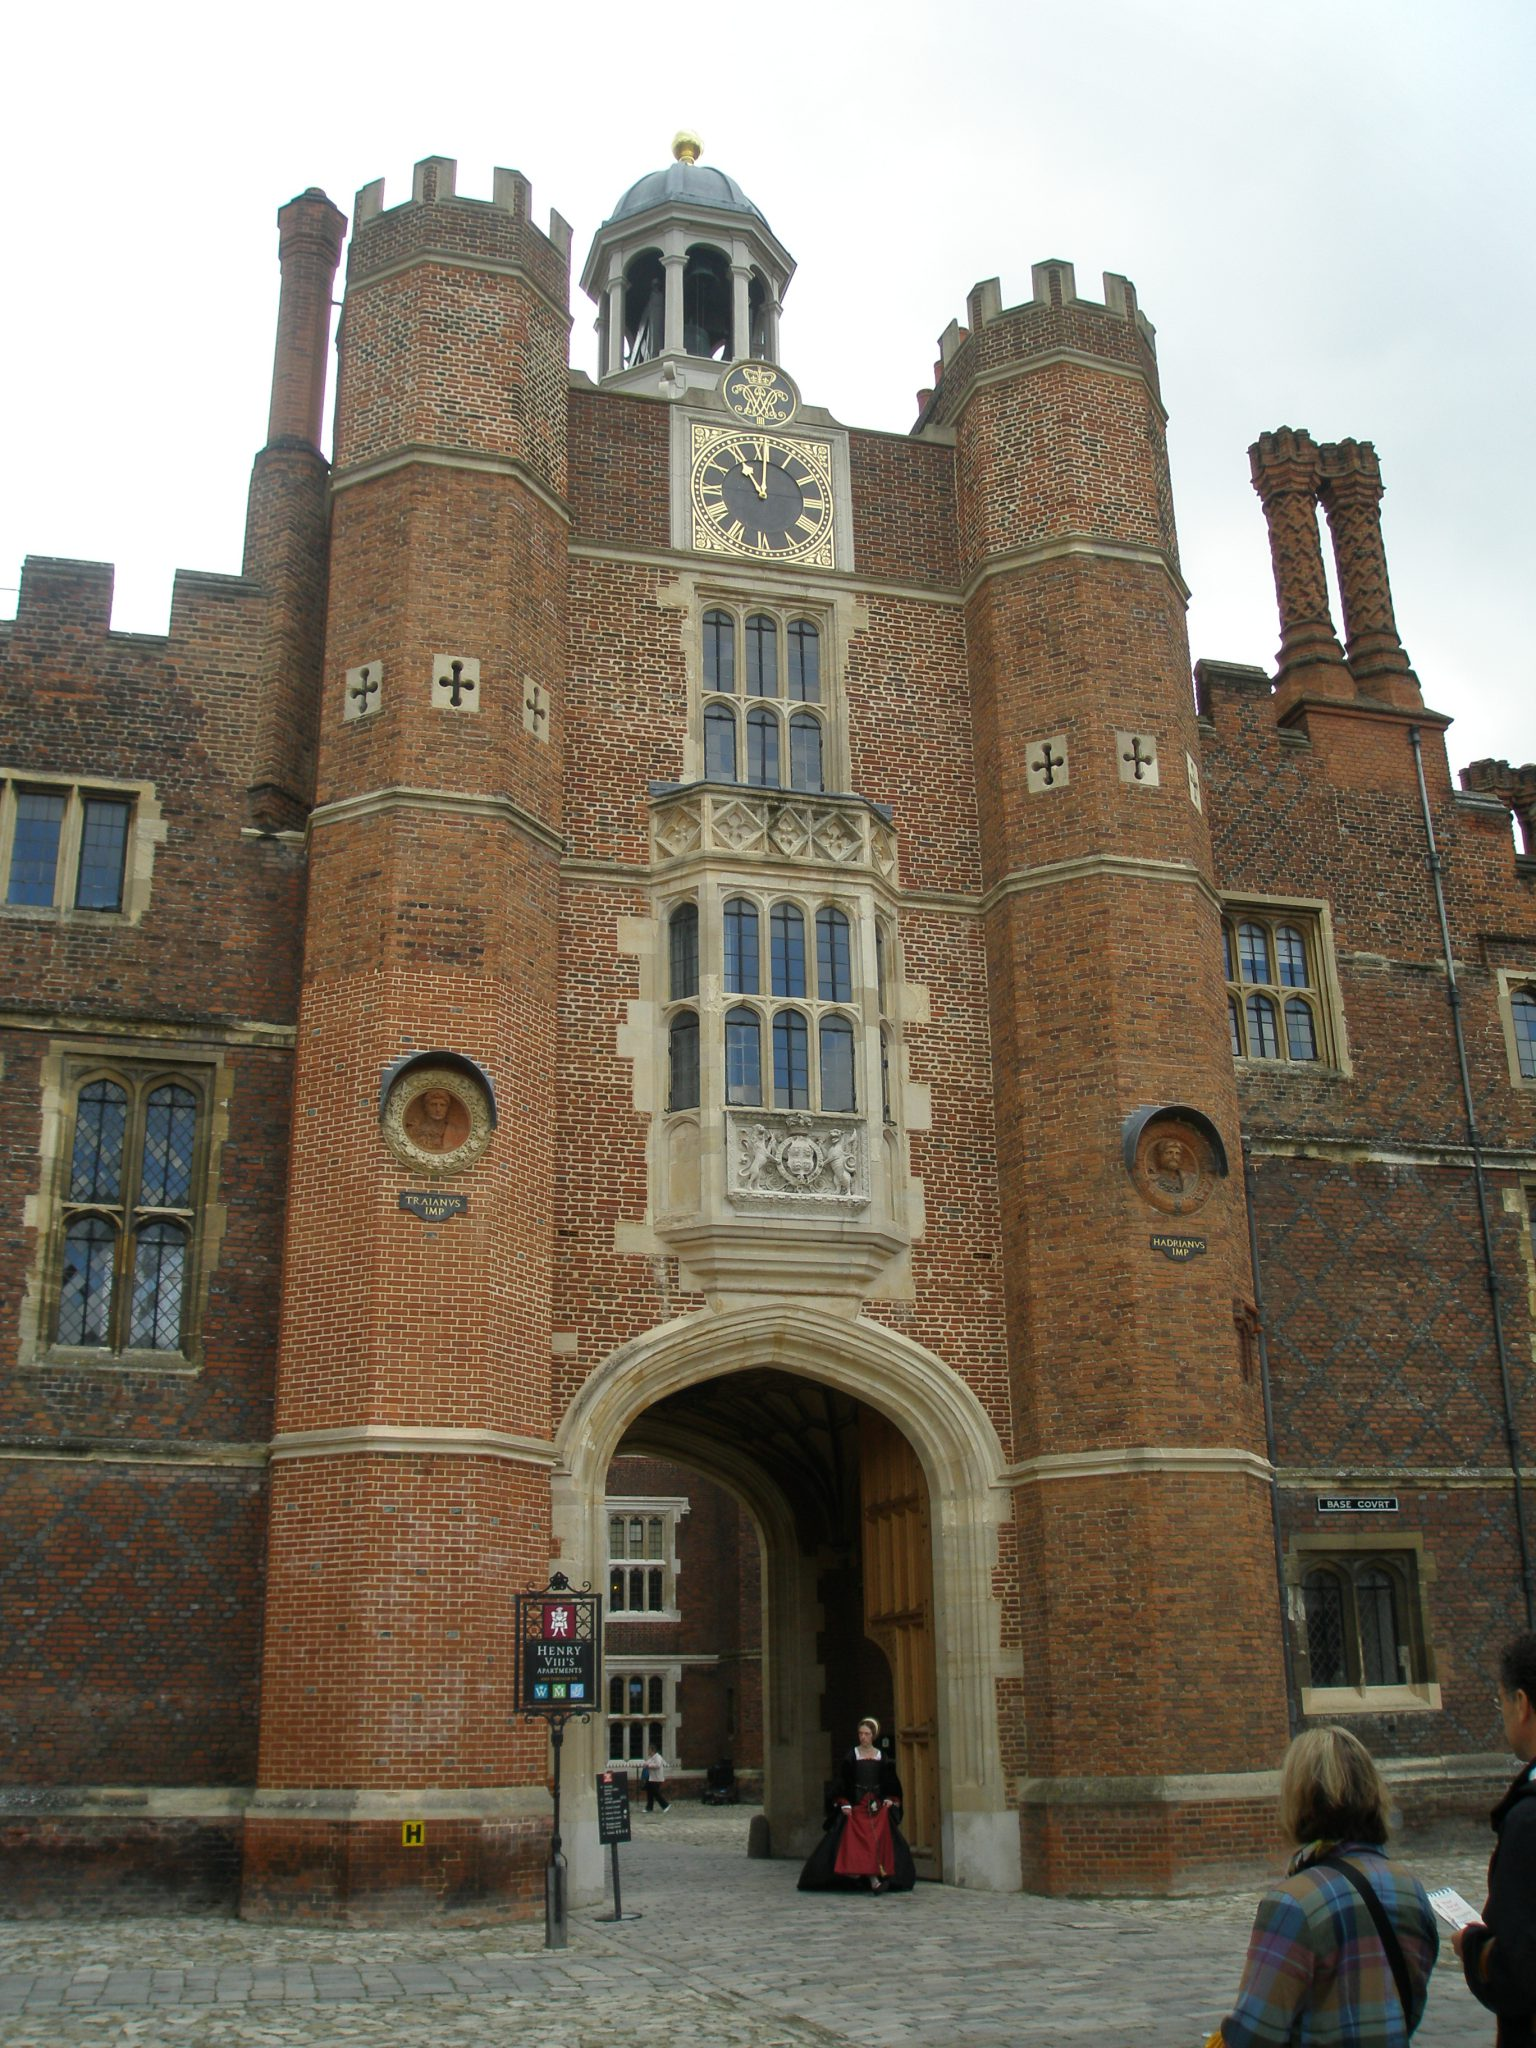 The Court Clock, on Anne Boleyn's Gatehouse